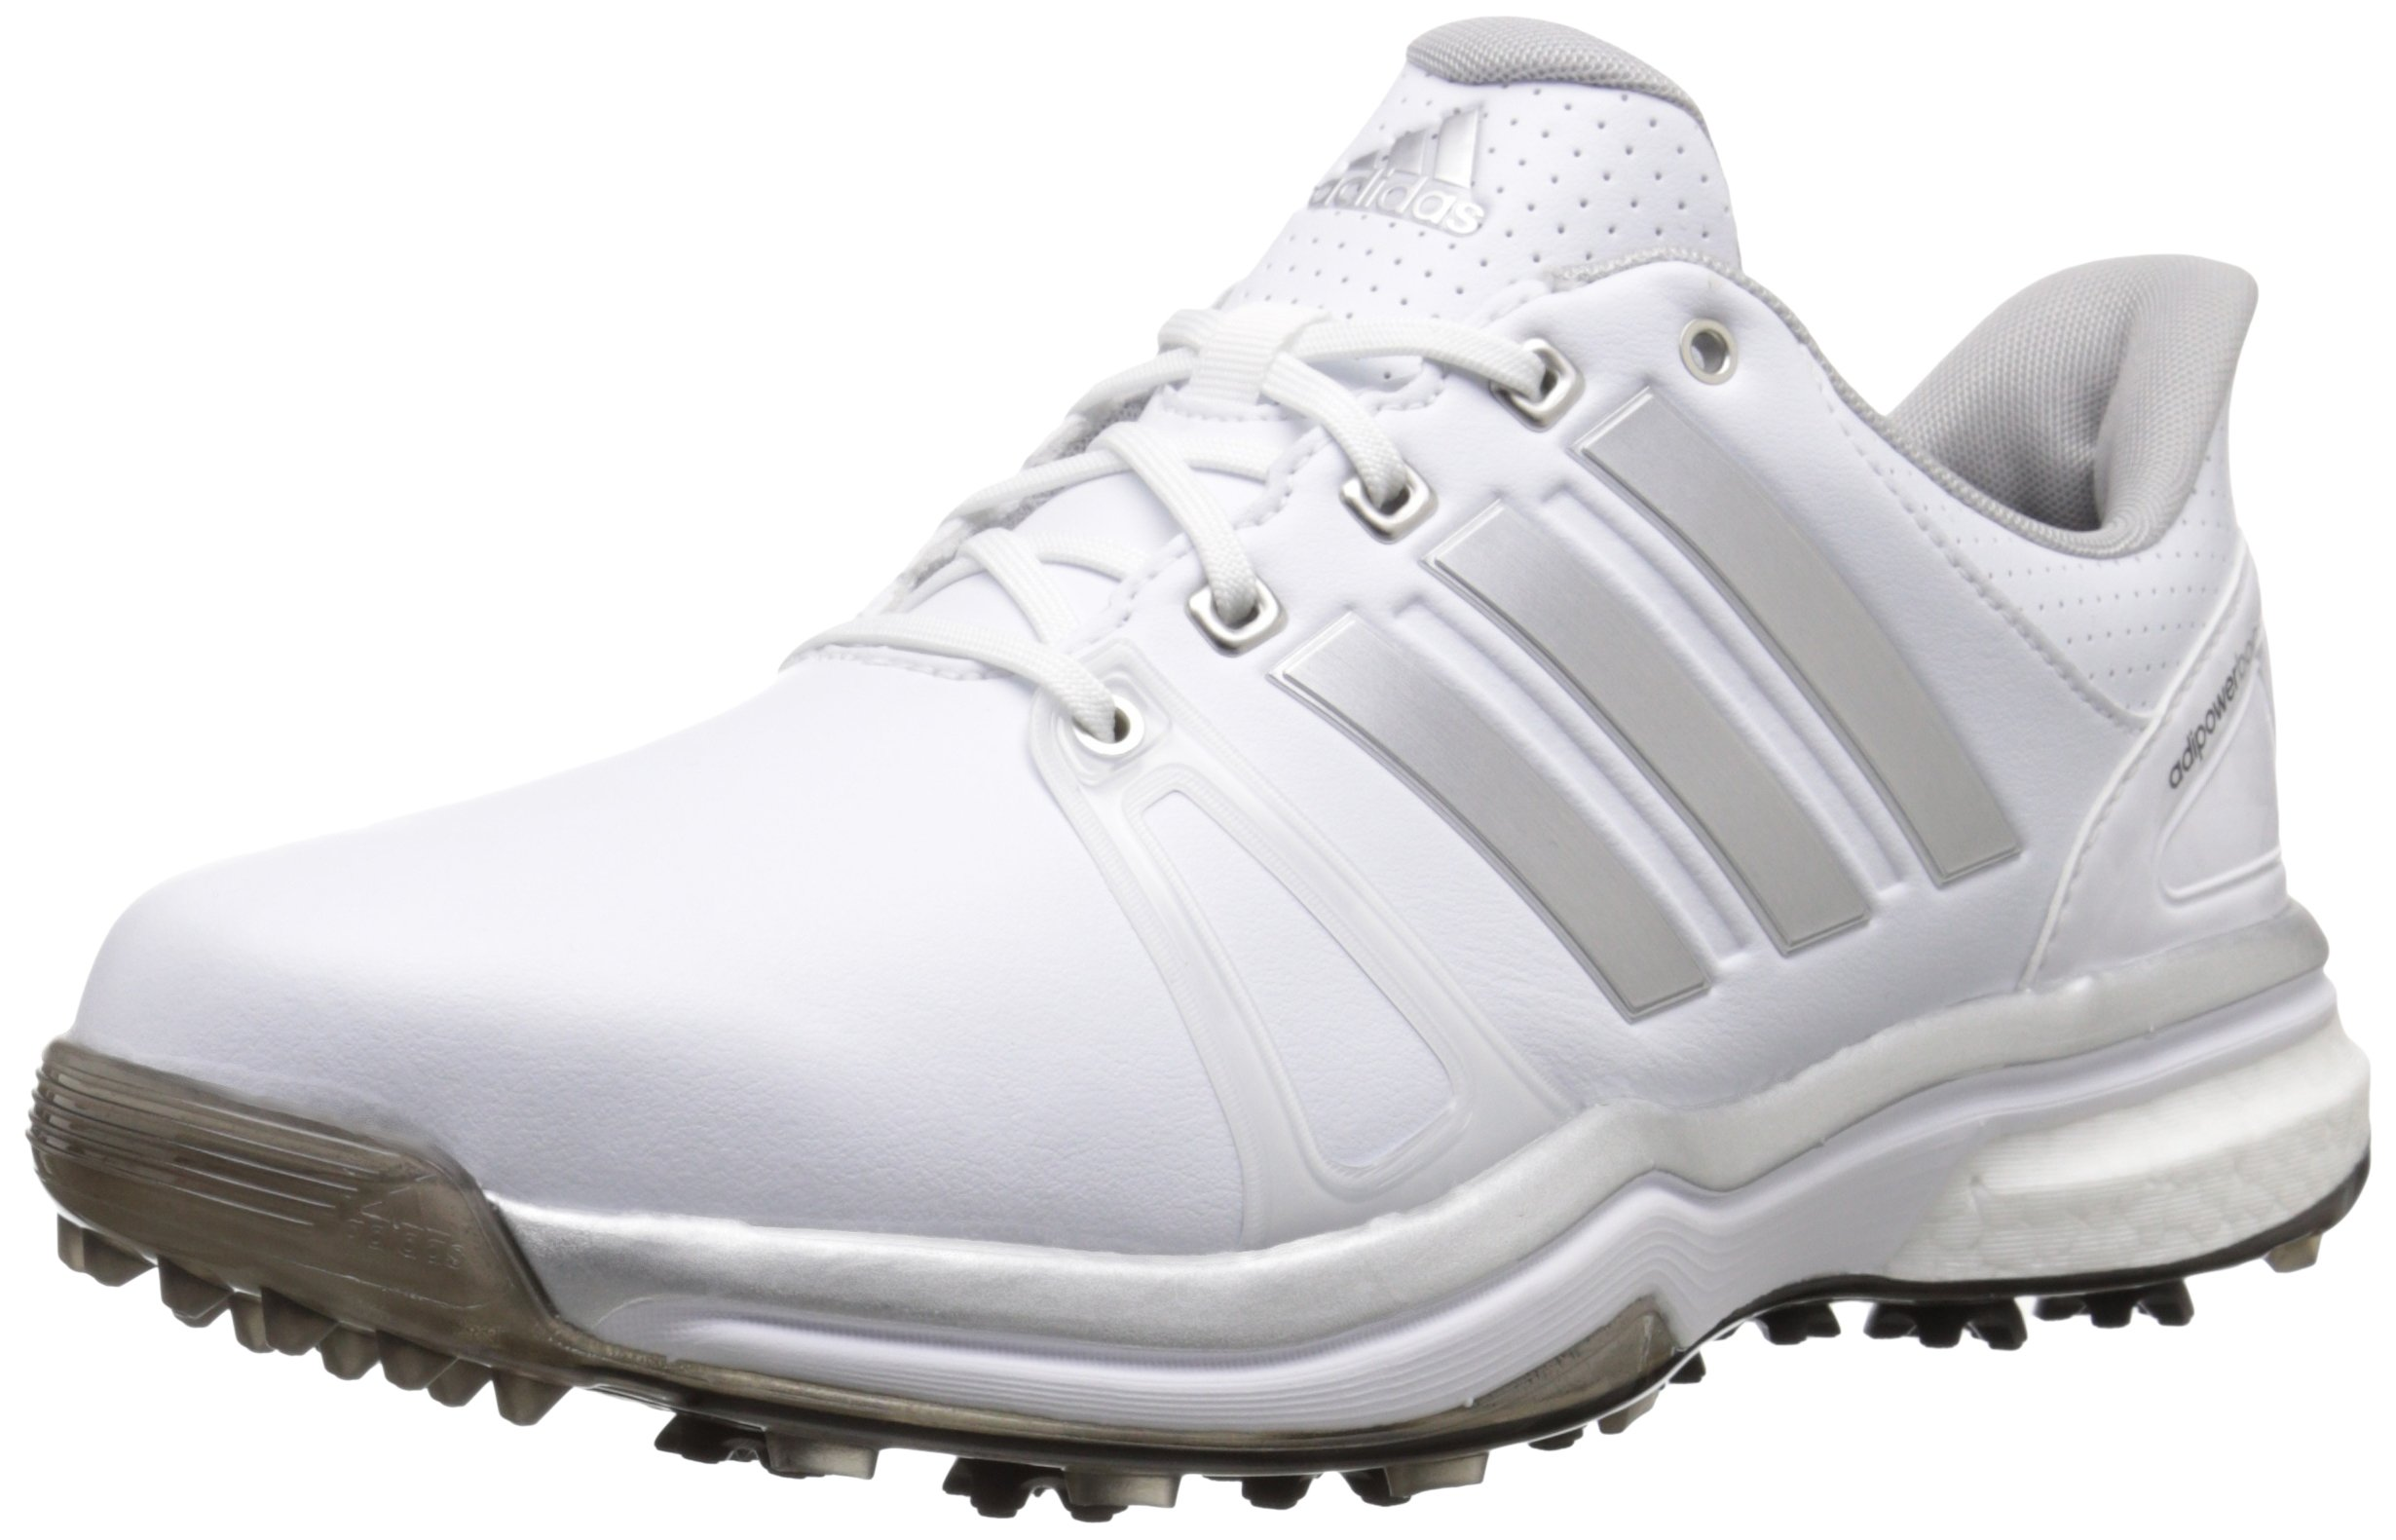 adidas Men's Adipower Boost 2 Golf Cleated, FTWR White/Silver Metallic/Core Black, 11 M US